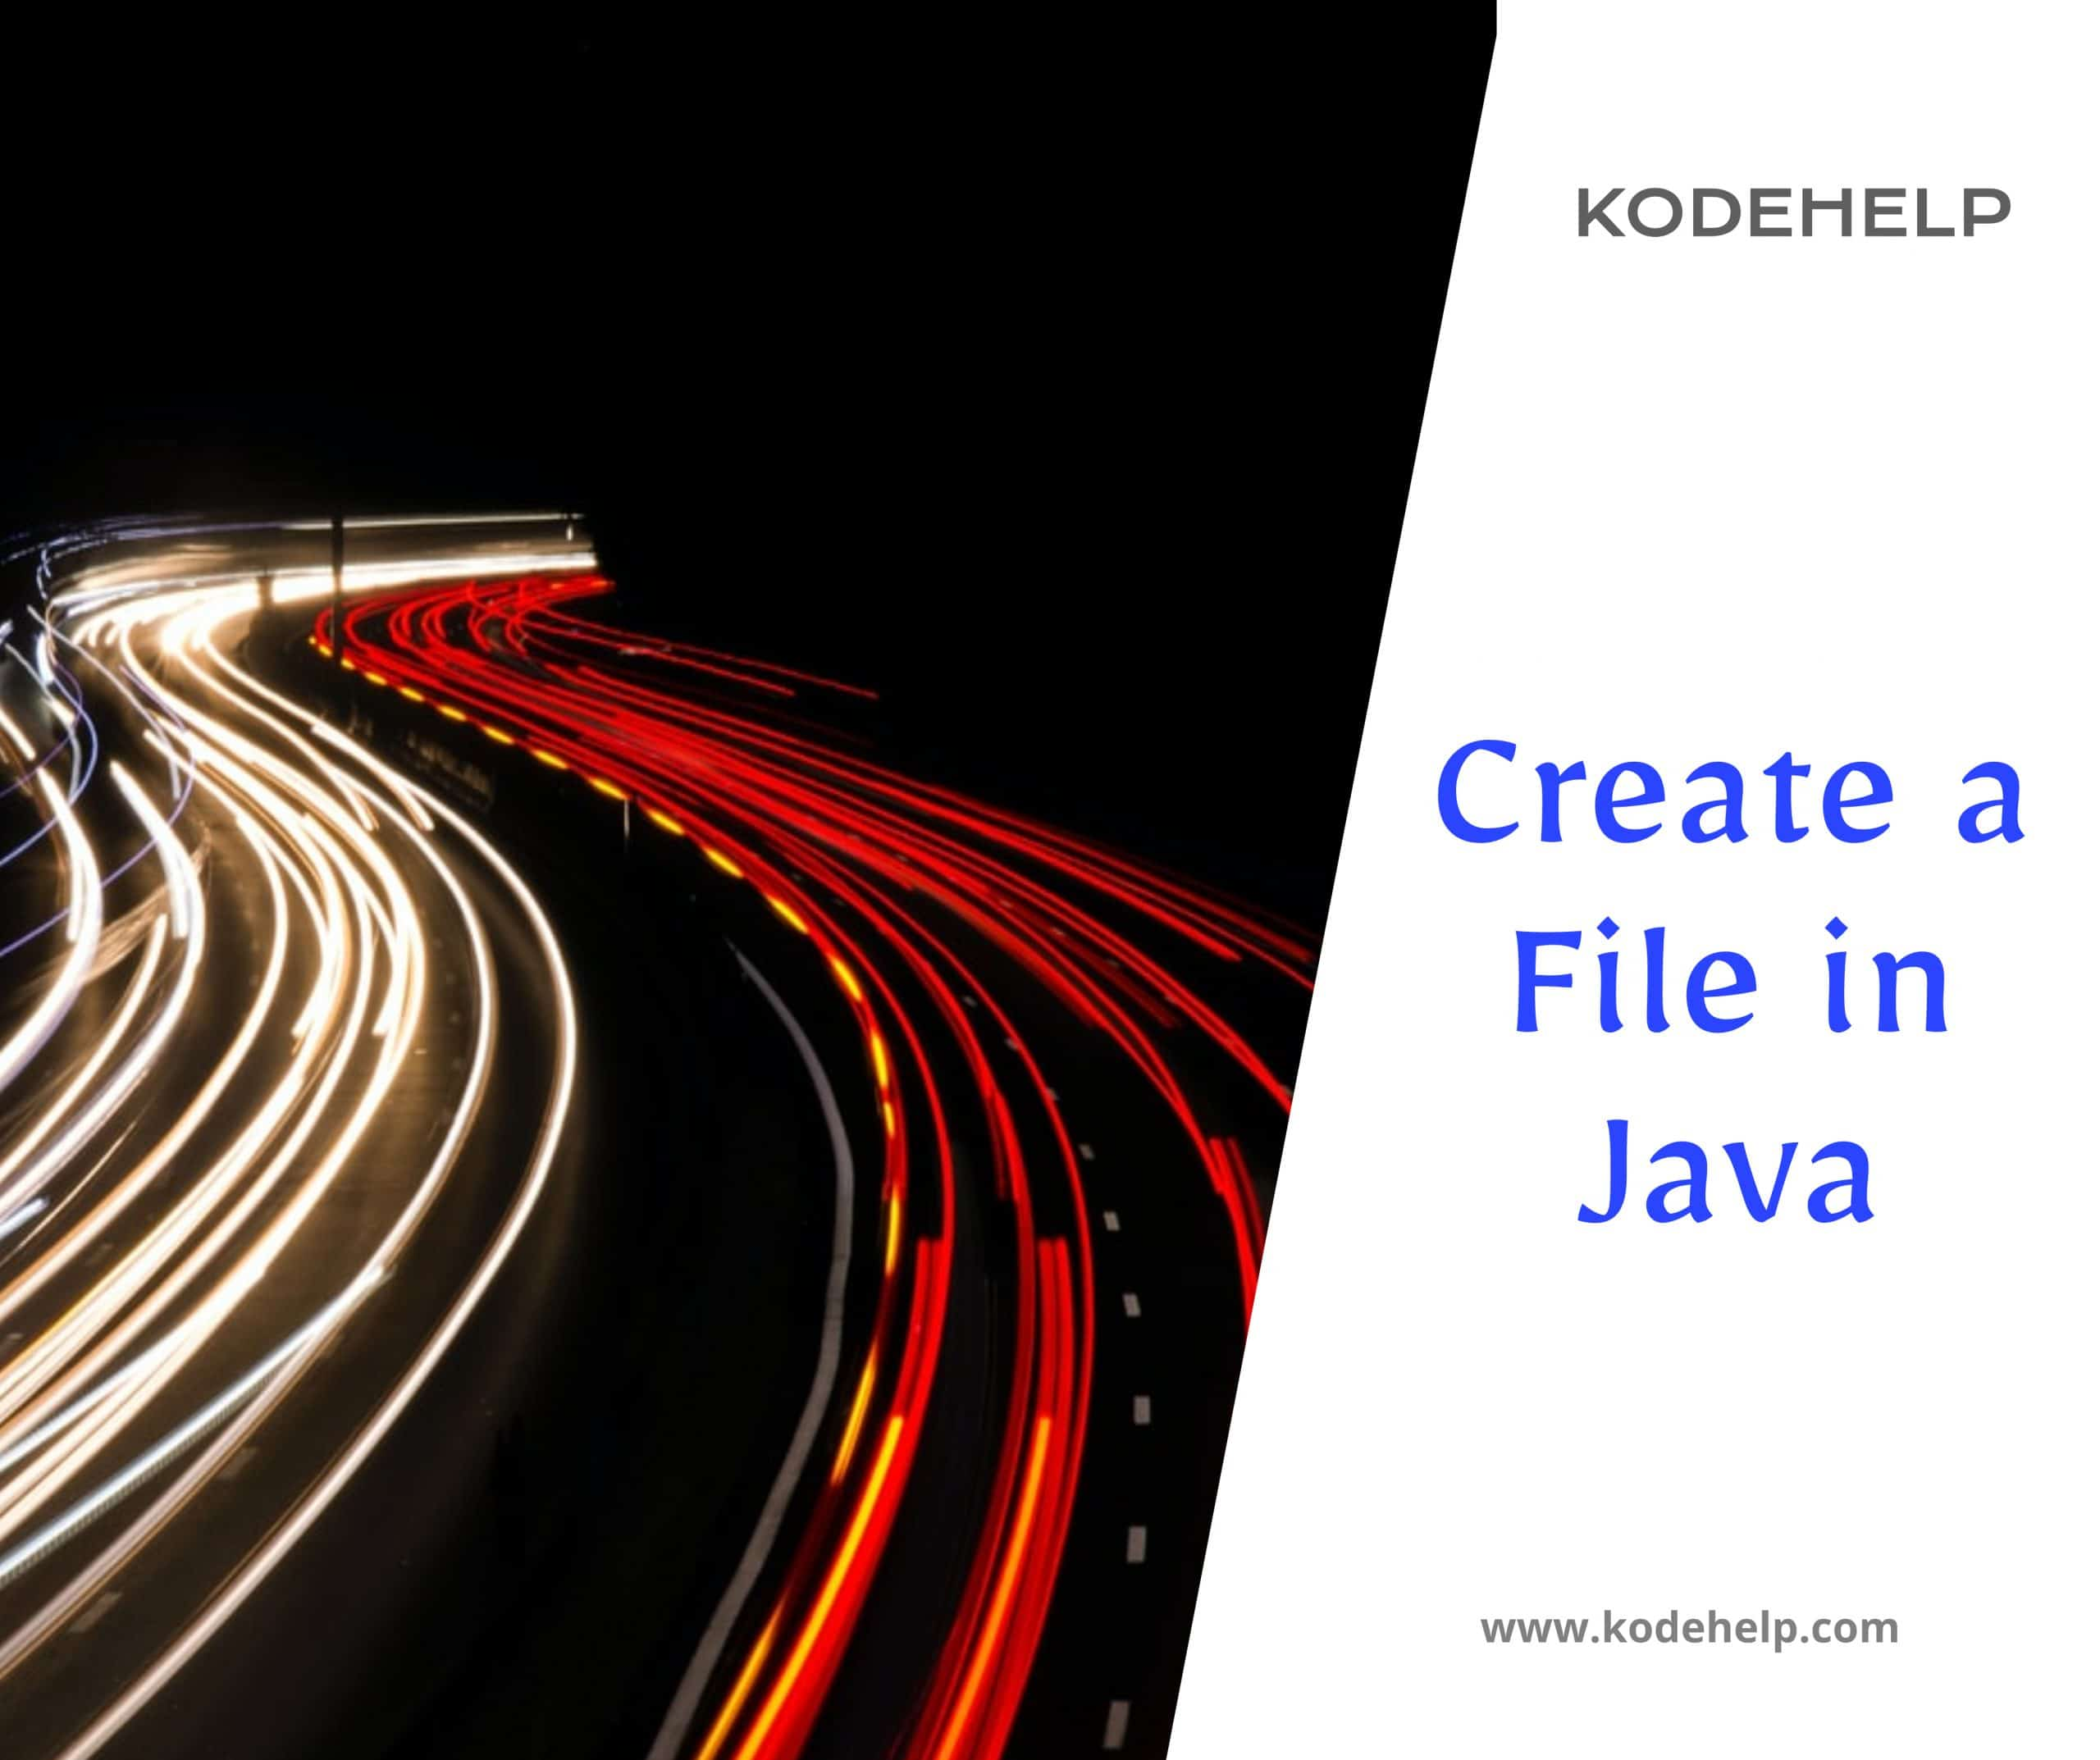 How to Create a File in Java?